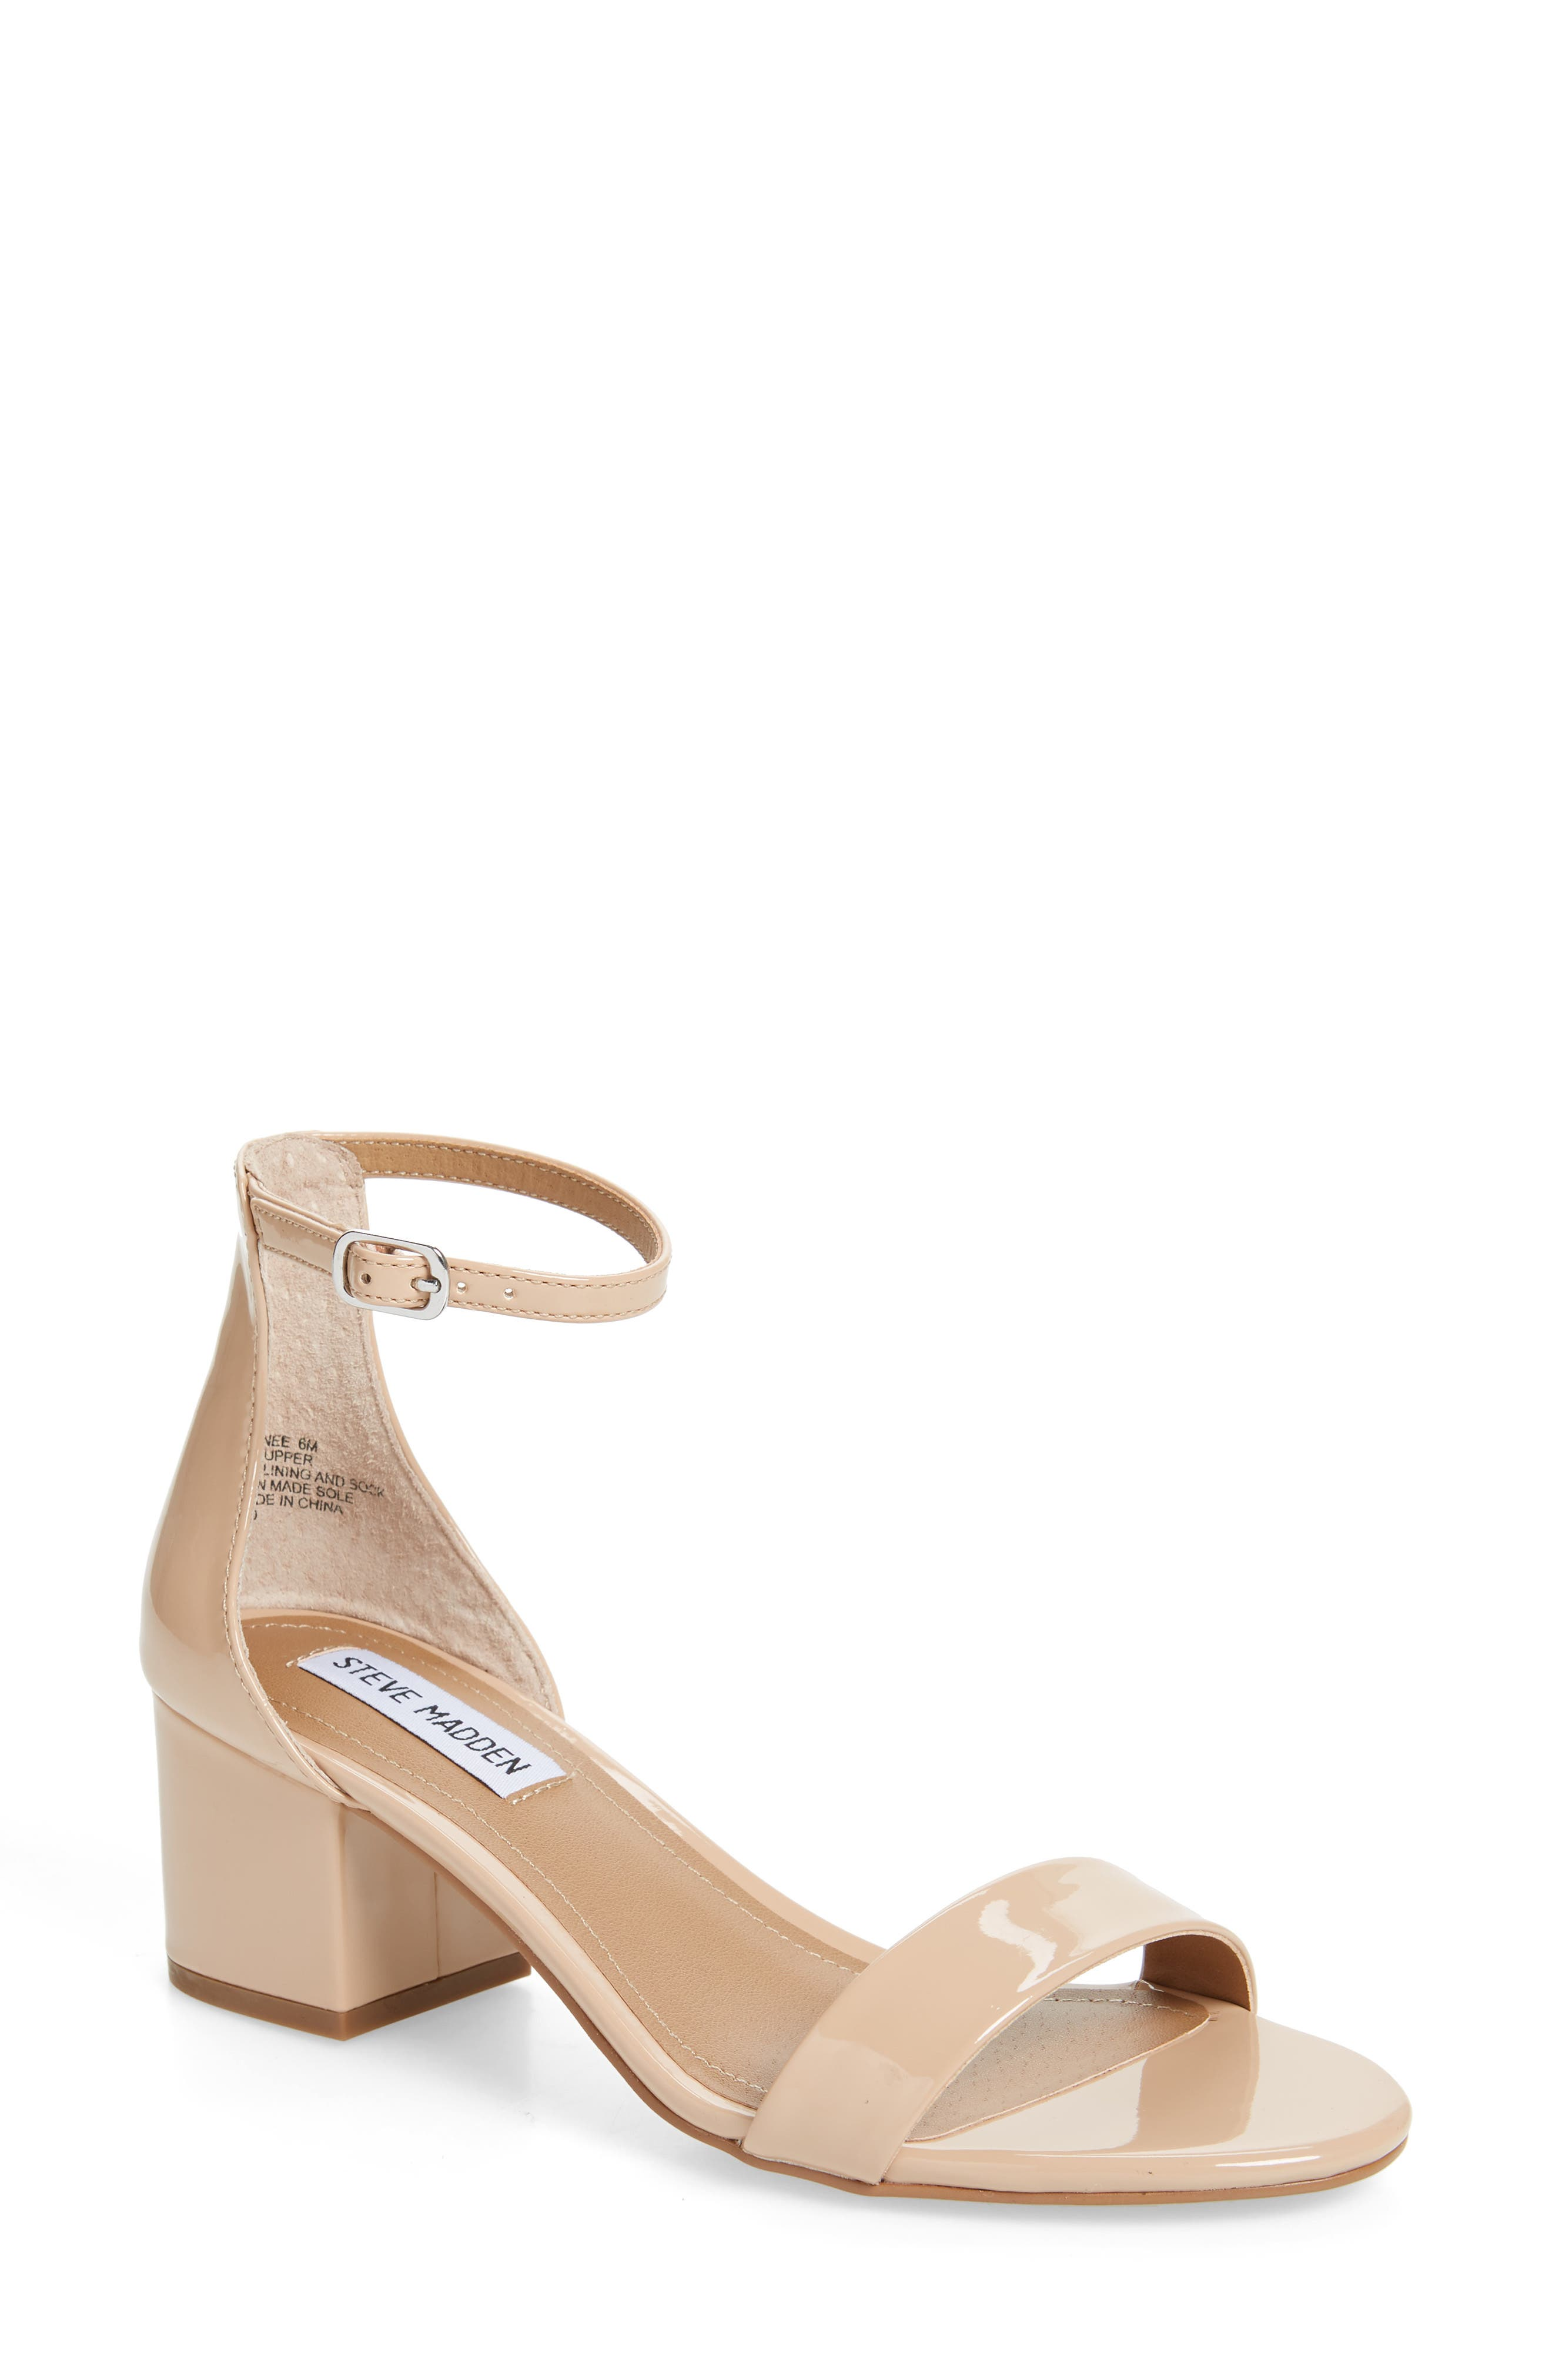 ,                             Irenee Ankle Strap Sandal,                             Main thumbnail 96, color,                             654